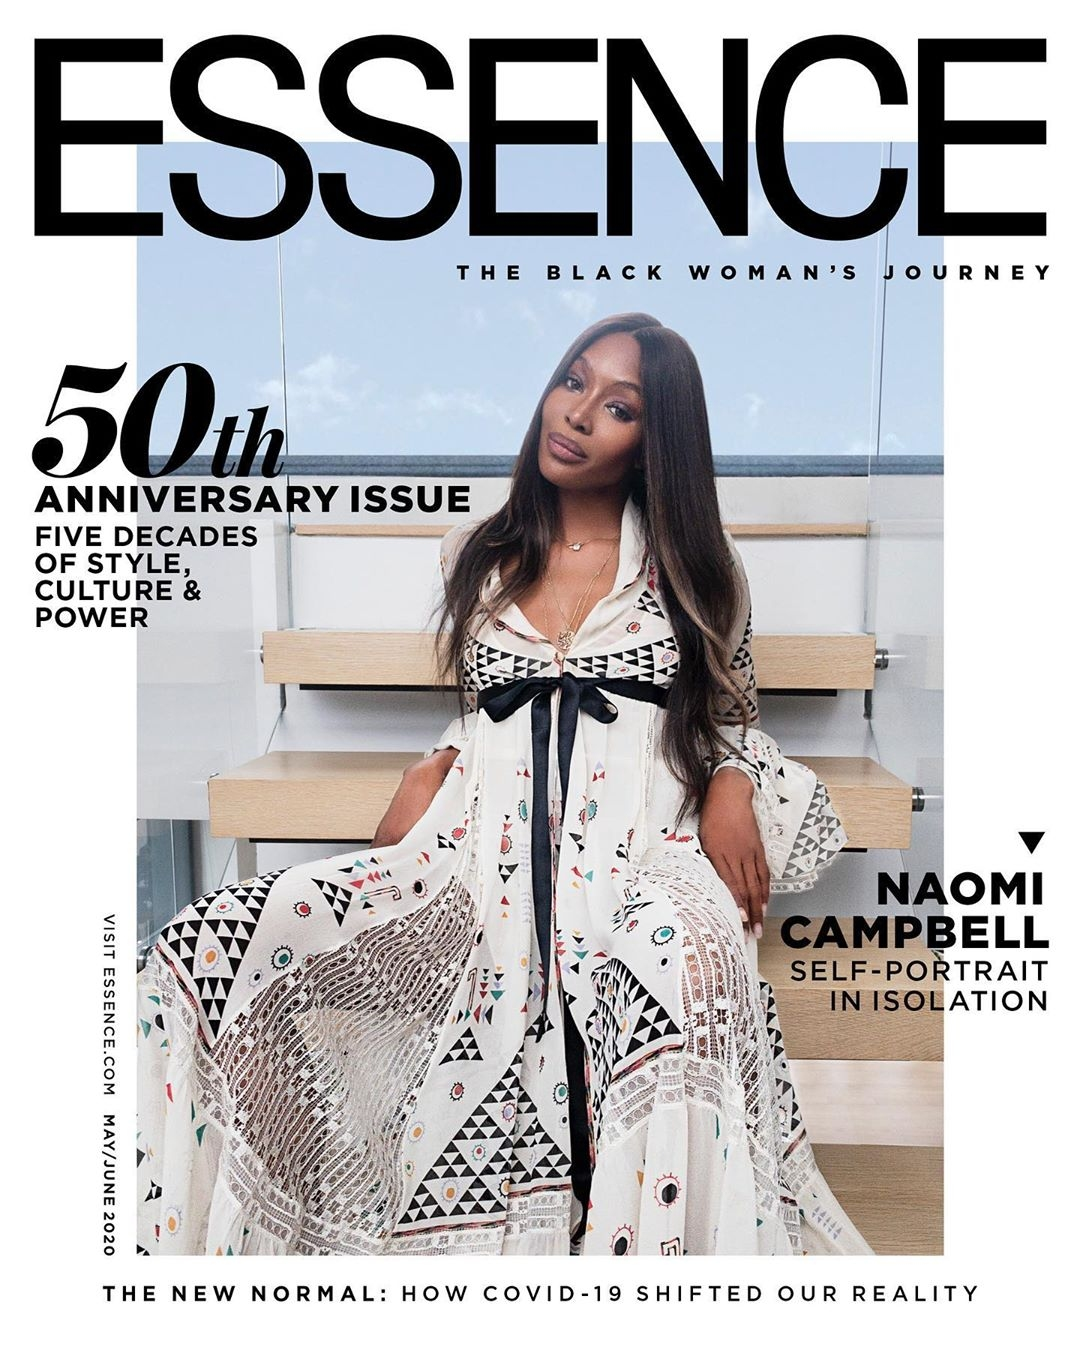 Naomi Campbell photographs herself for Essence 5Oth anniversary cover